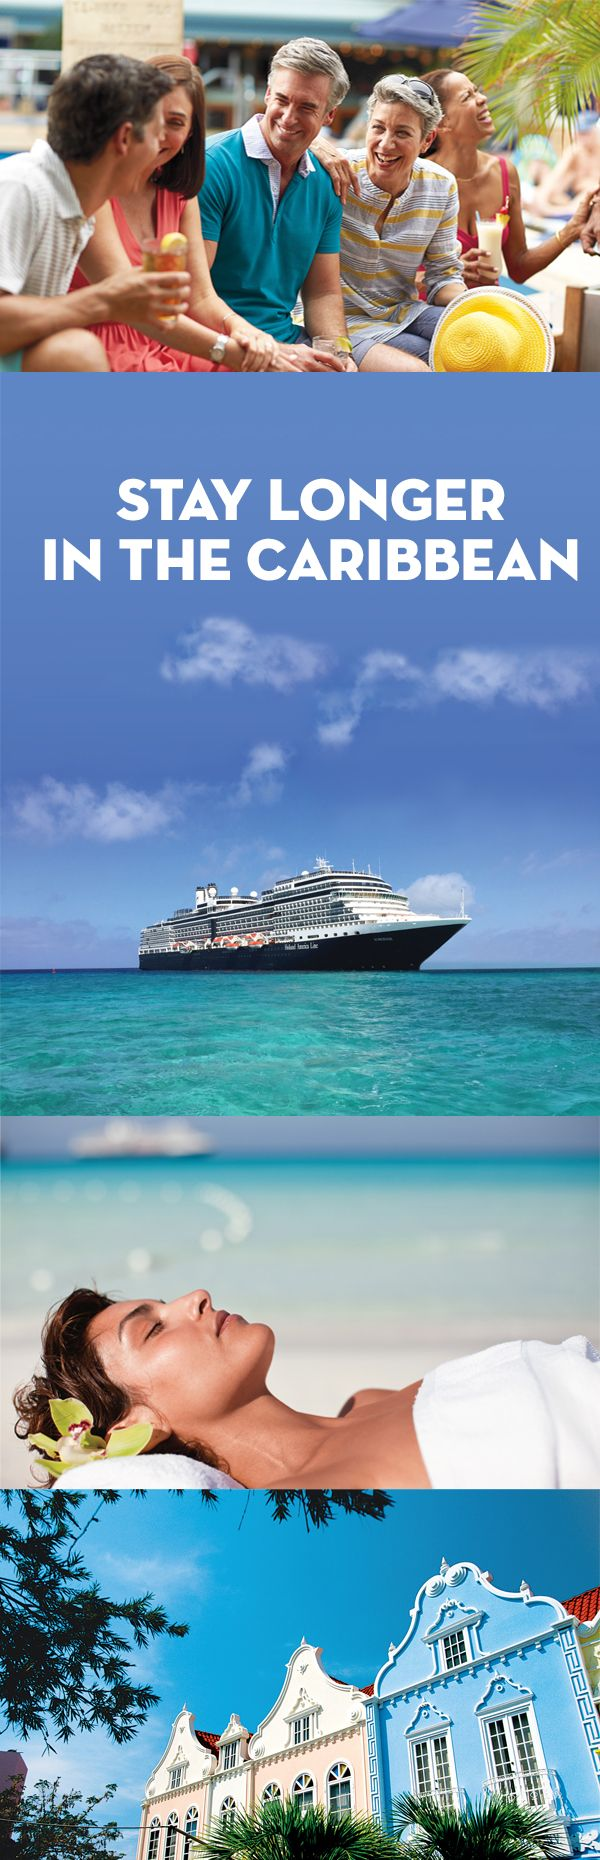 Whether 10 days or 3 weeks—your Caribbean travel plans start here. Our longer cruises take you on a relaxing (or adventurous!) journey through the Caribbean, gliding in classic style from port to port. Enjoy beaches, rainforests, and cool ocean breeze on shore and the comfort of delectable dishes, relaxing spas, and lively music on board—only on Holland America Line.